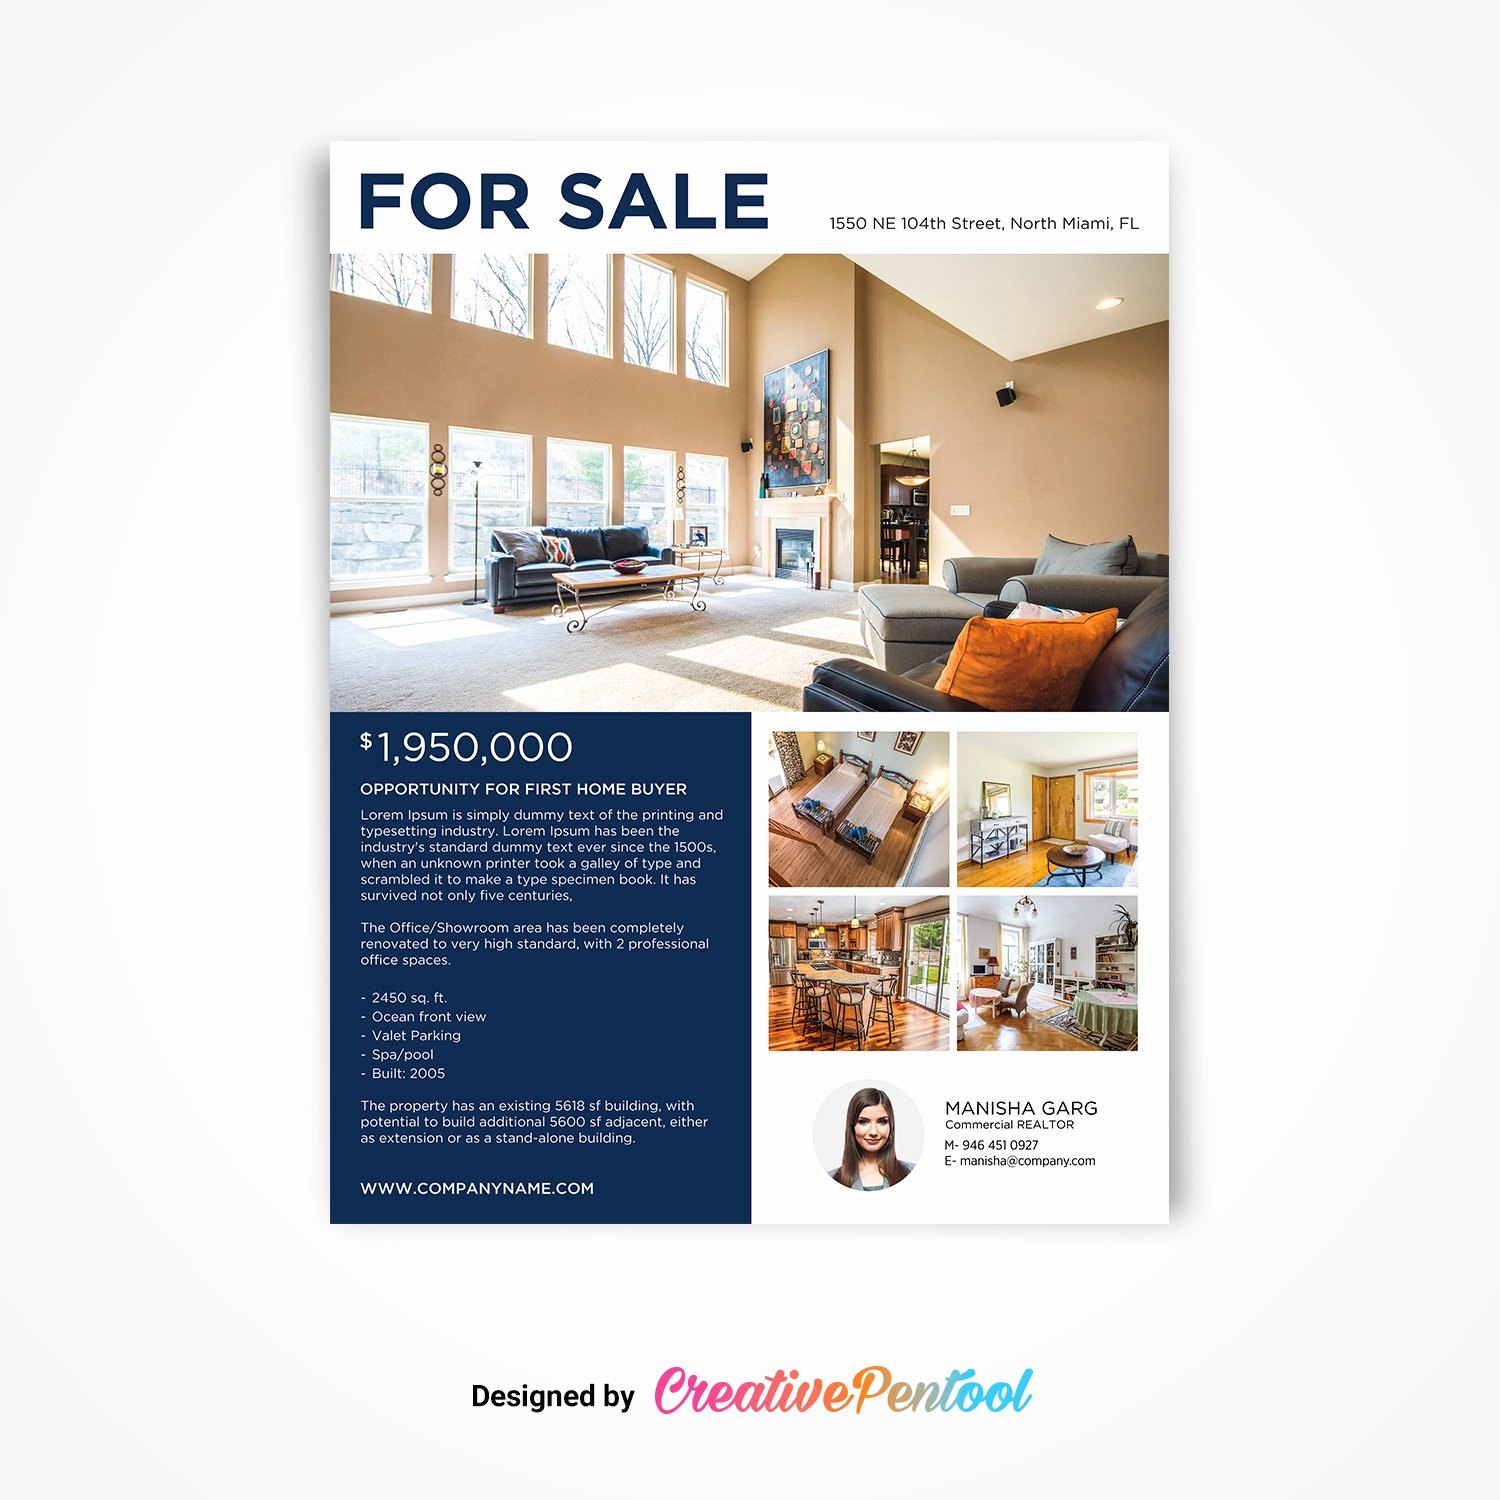 Luxury Real Estate Flyers Awesome Luxury Real Estate Flyer for Sale Creativepentool